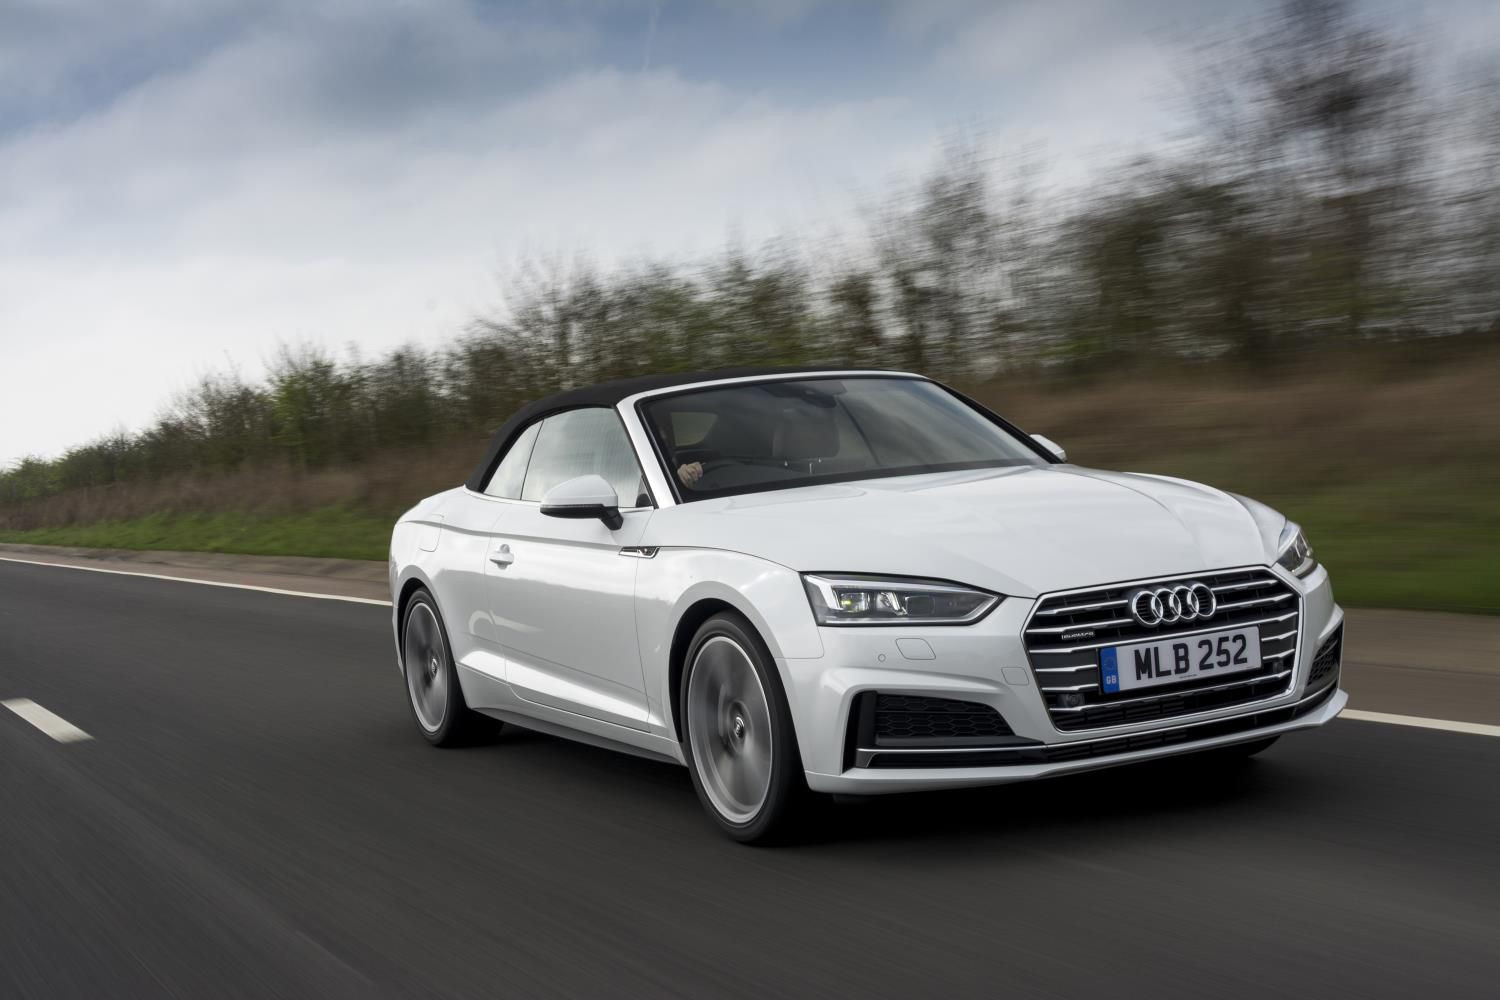 Best Things About The Audi A5 Cabriolet What S The Audi A5 Cabriolet Like